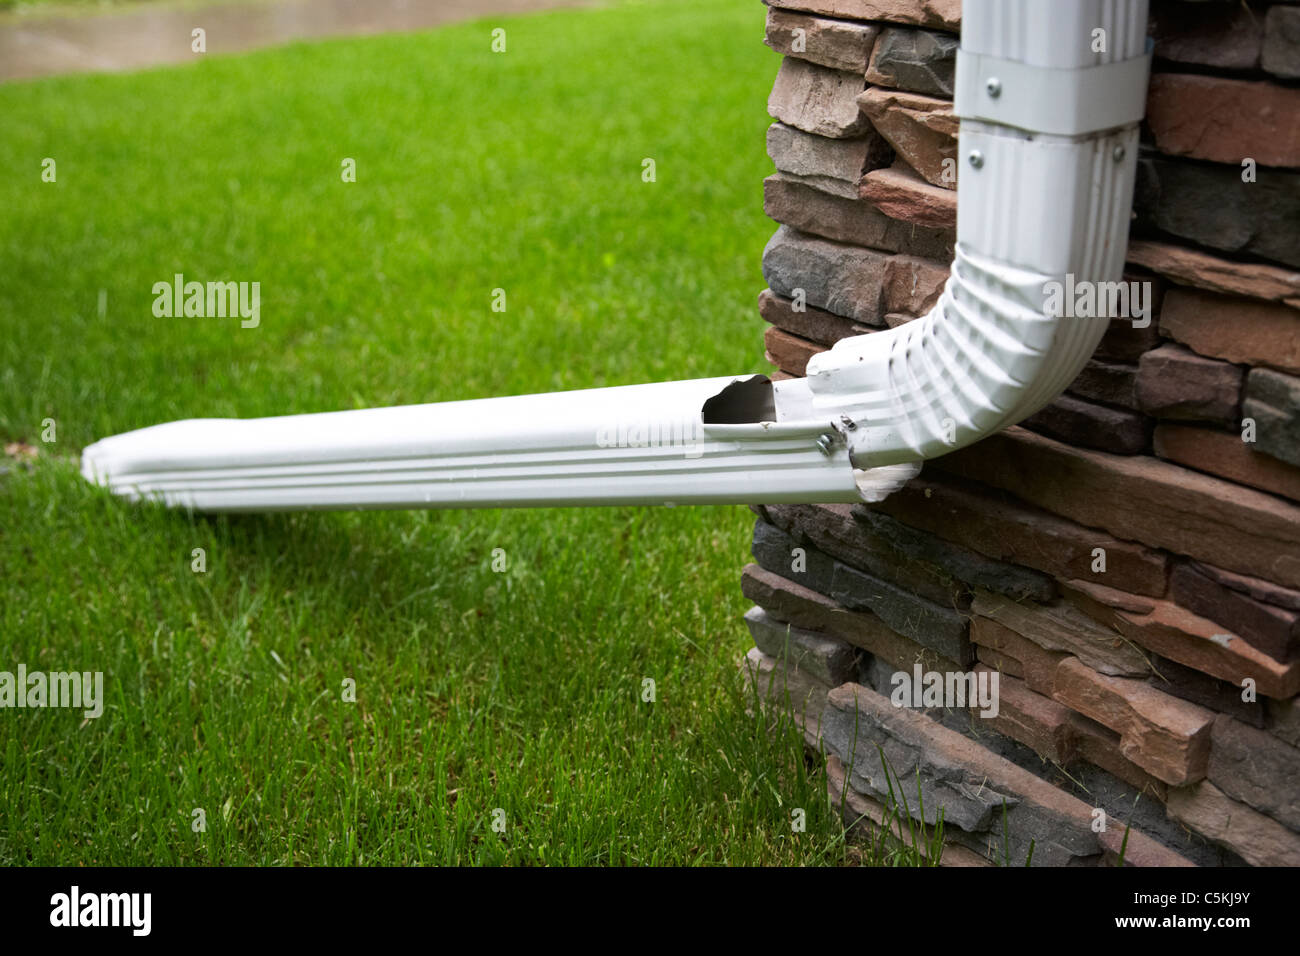 drain spout extension to keep rain away from building and basements in Canada - Stock Image